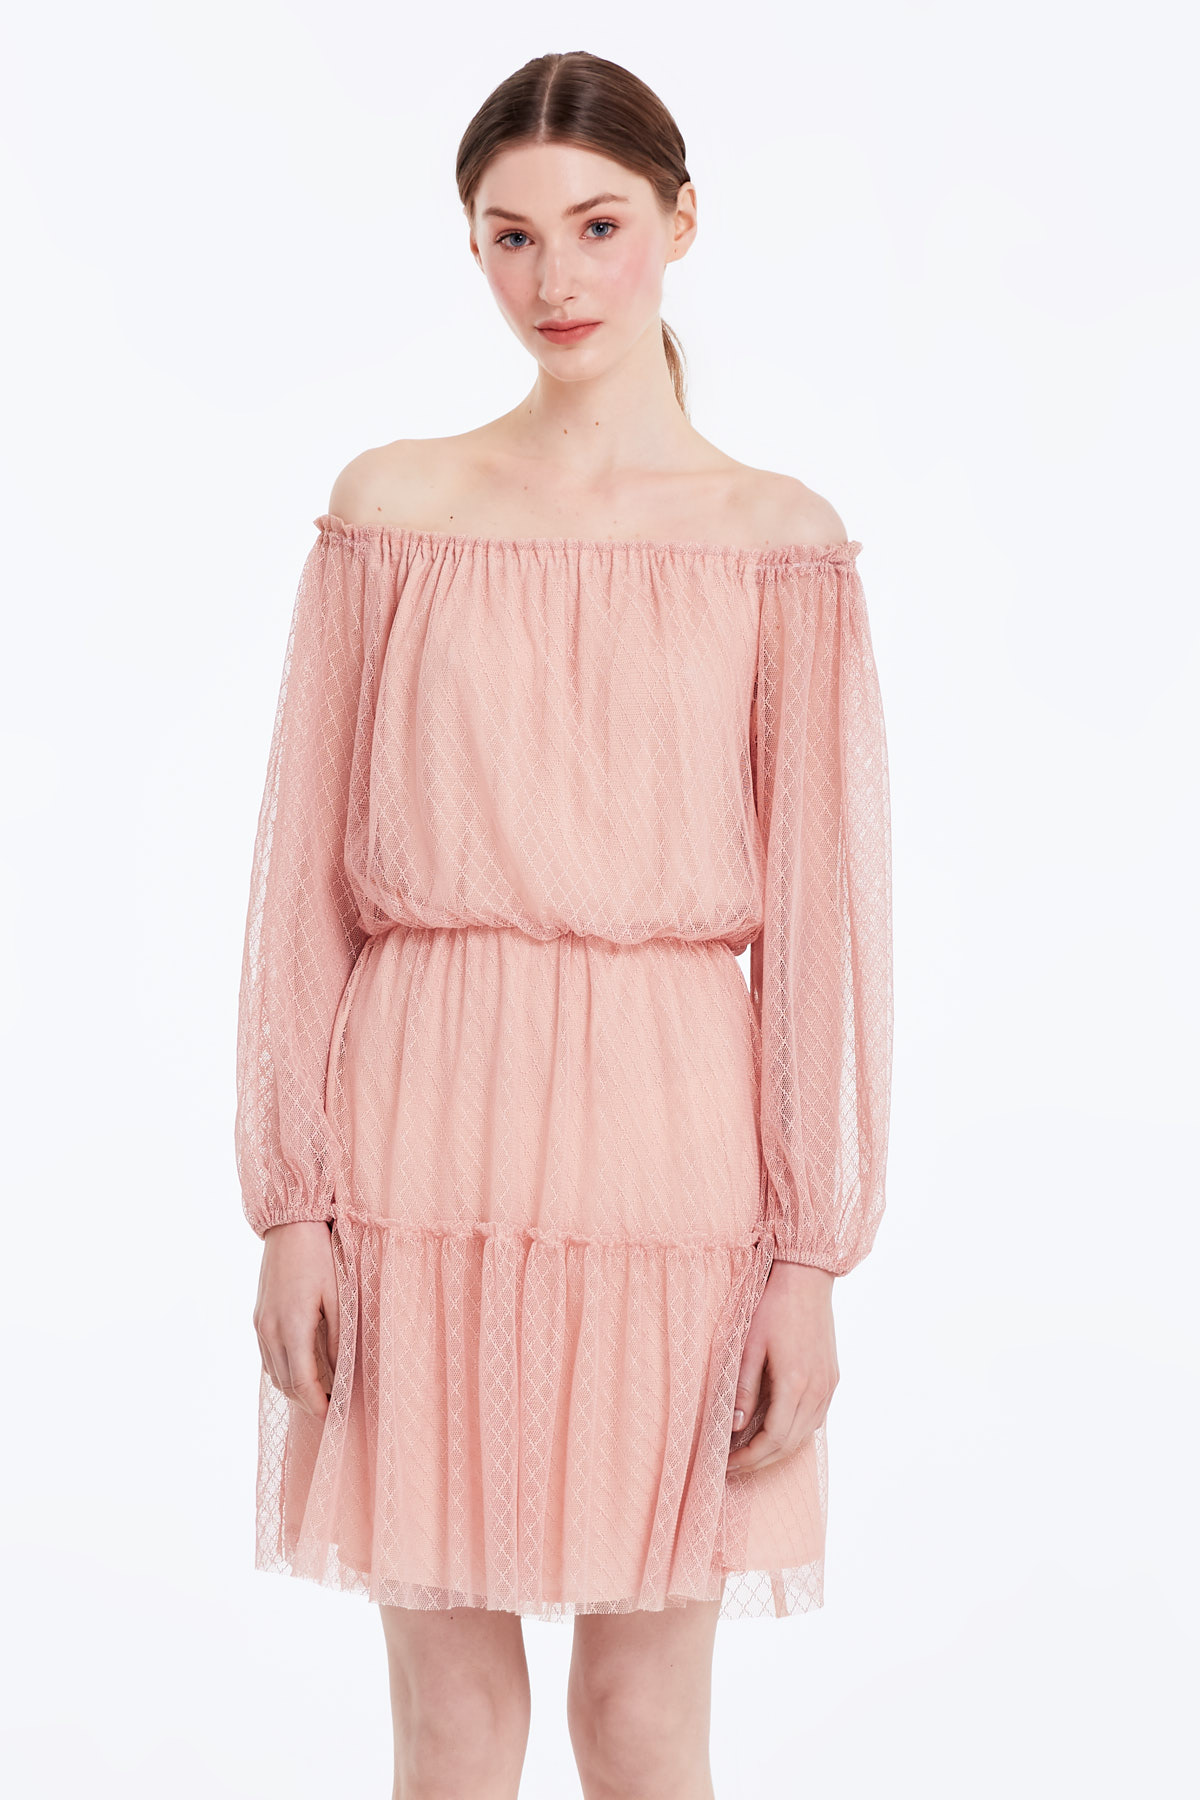 5abc6c15ddd4 Off-shoulder powder pink lace dress photo 1 - MustHave online store